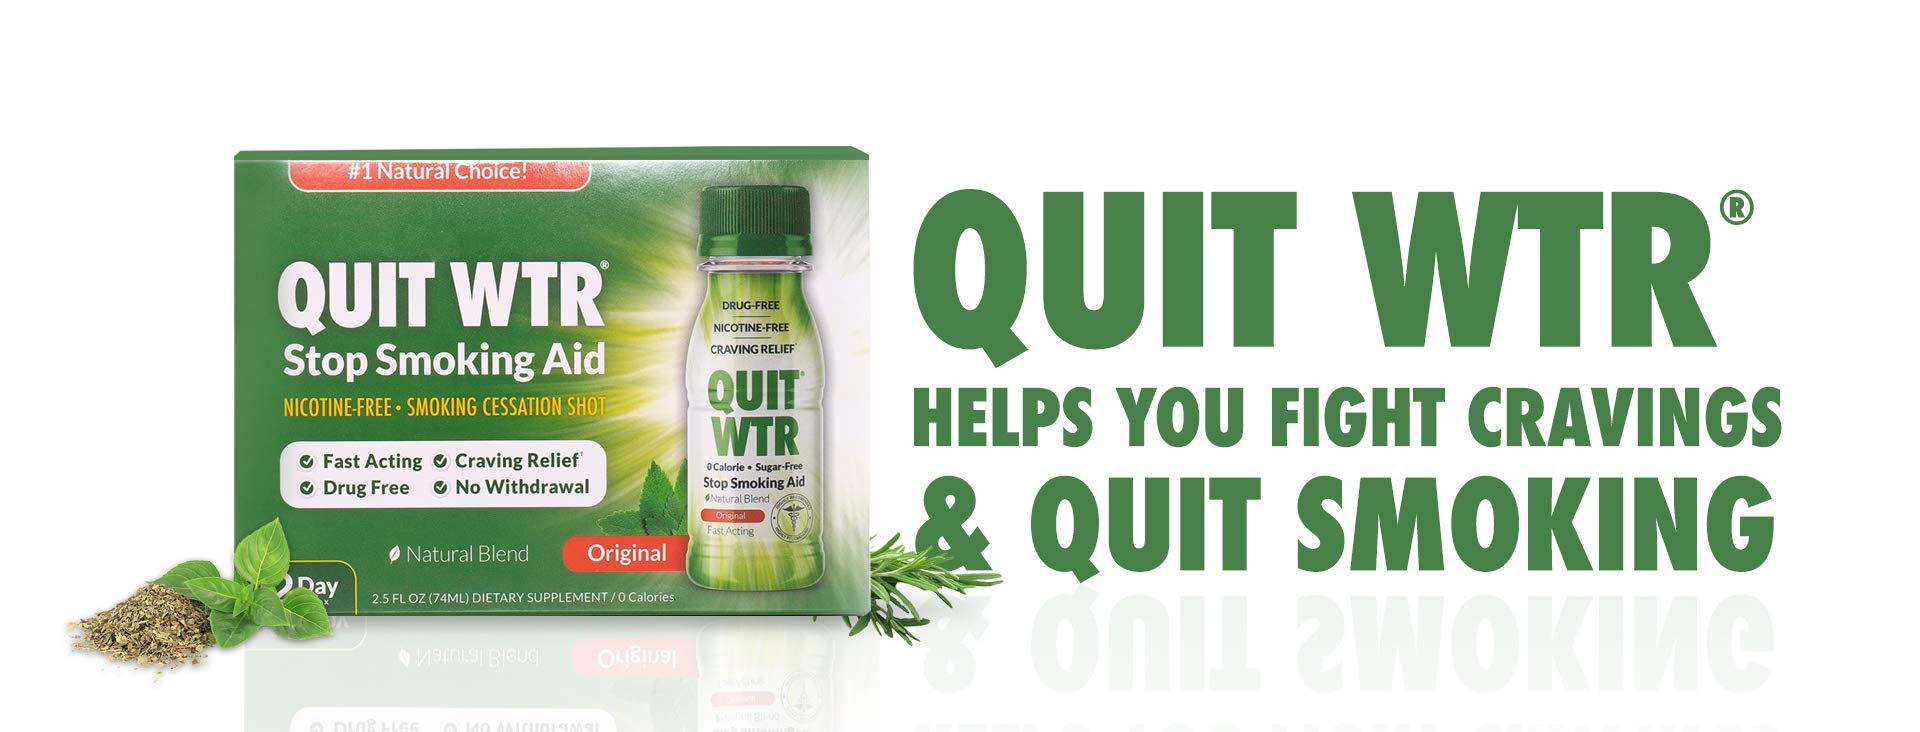 Quit Smoking Aid/Quit WTR Natural Smoking Cessation Supplement / 12 Day Detox to Help Curb Cravings & Overcome The urge to Smoke 24/7 (Original, 12 Day Detox)